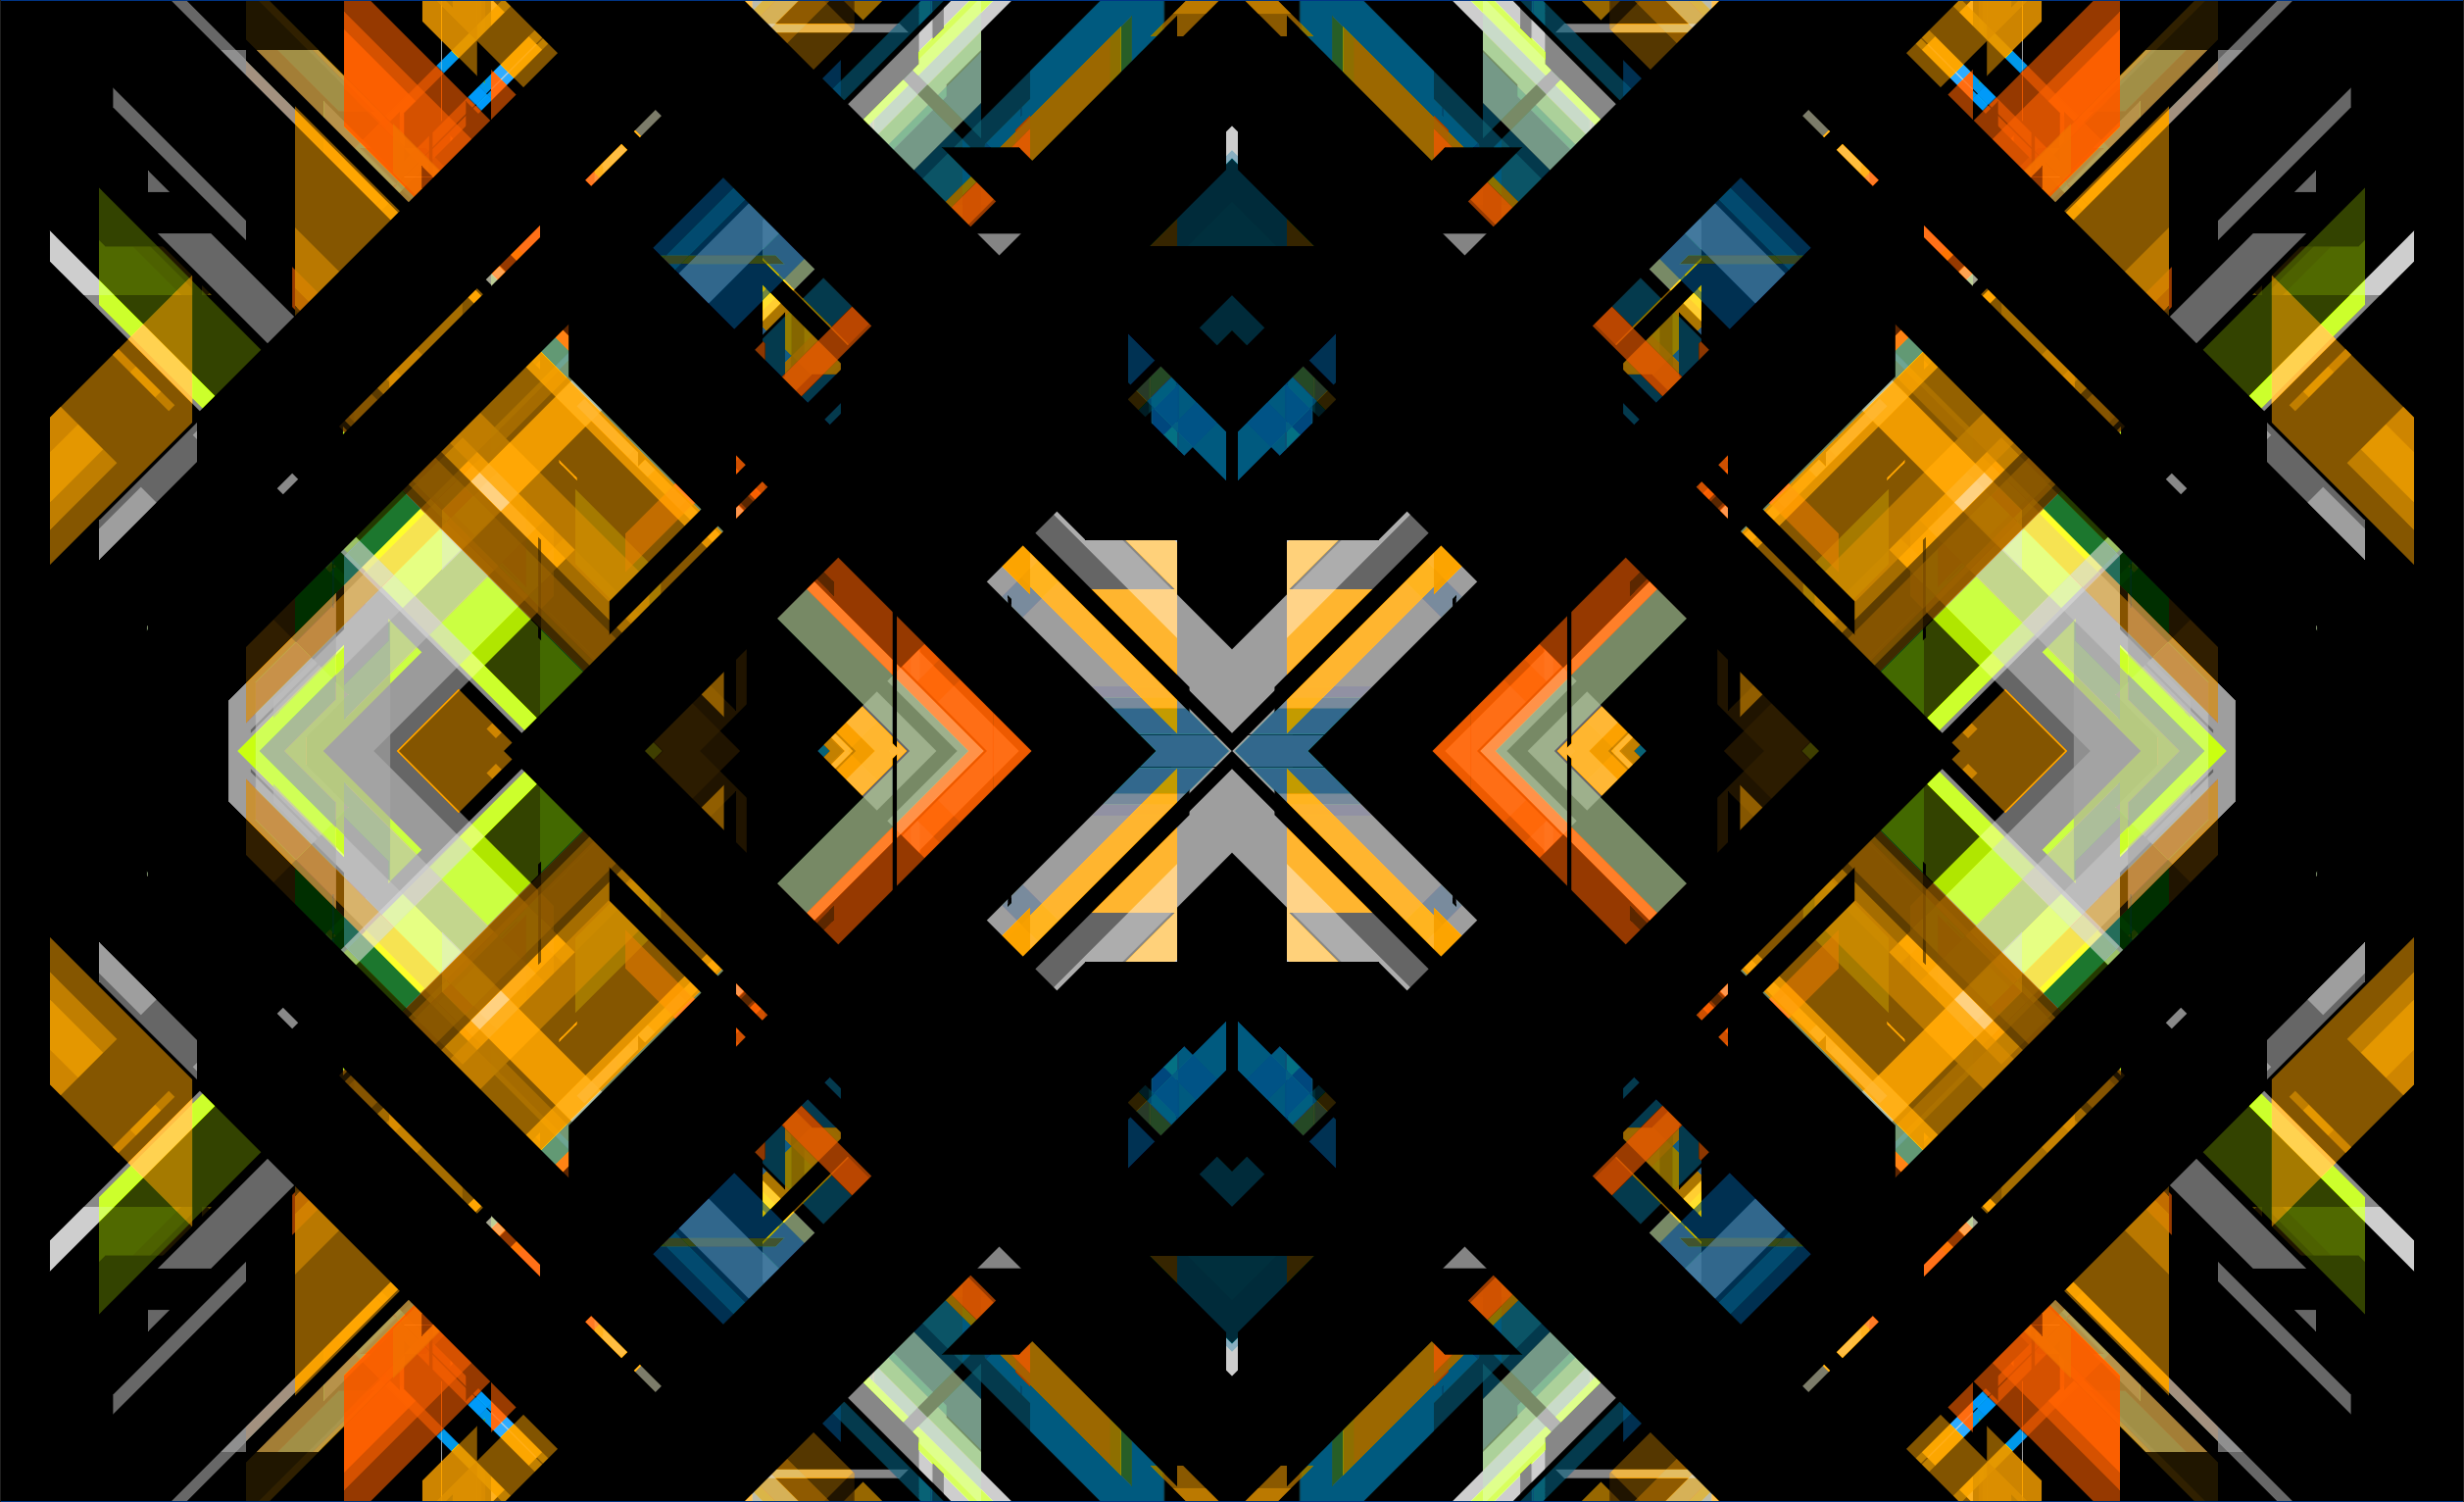 Visual made with Processing